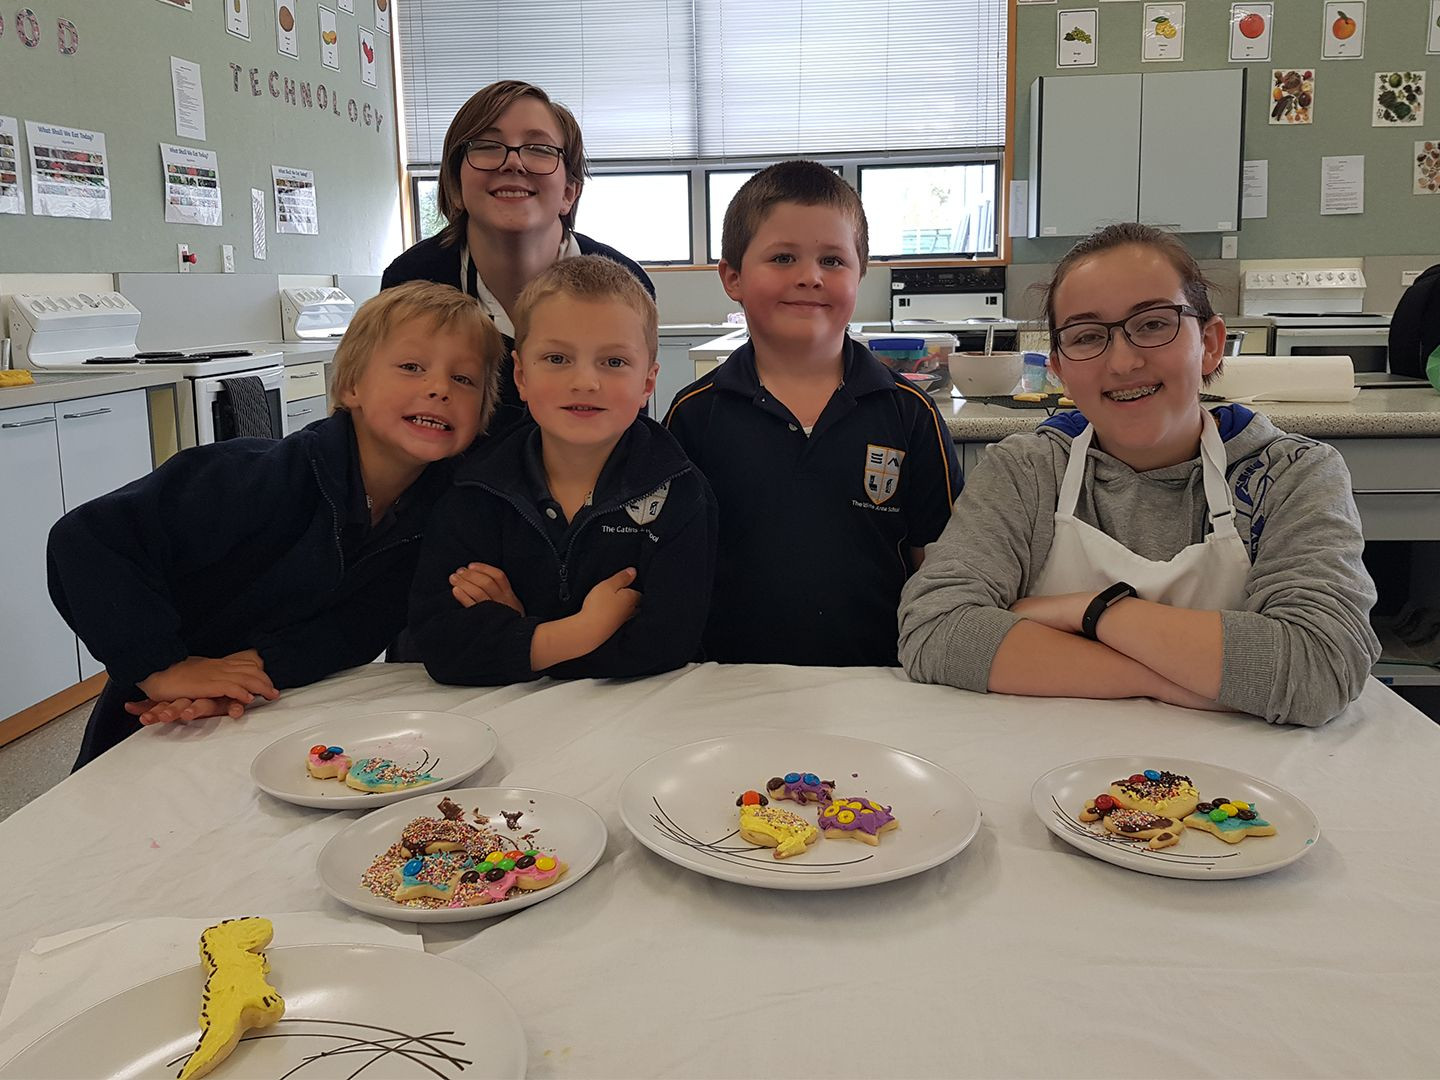 Baking with Room 1